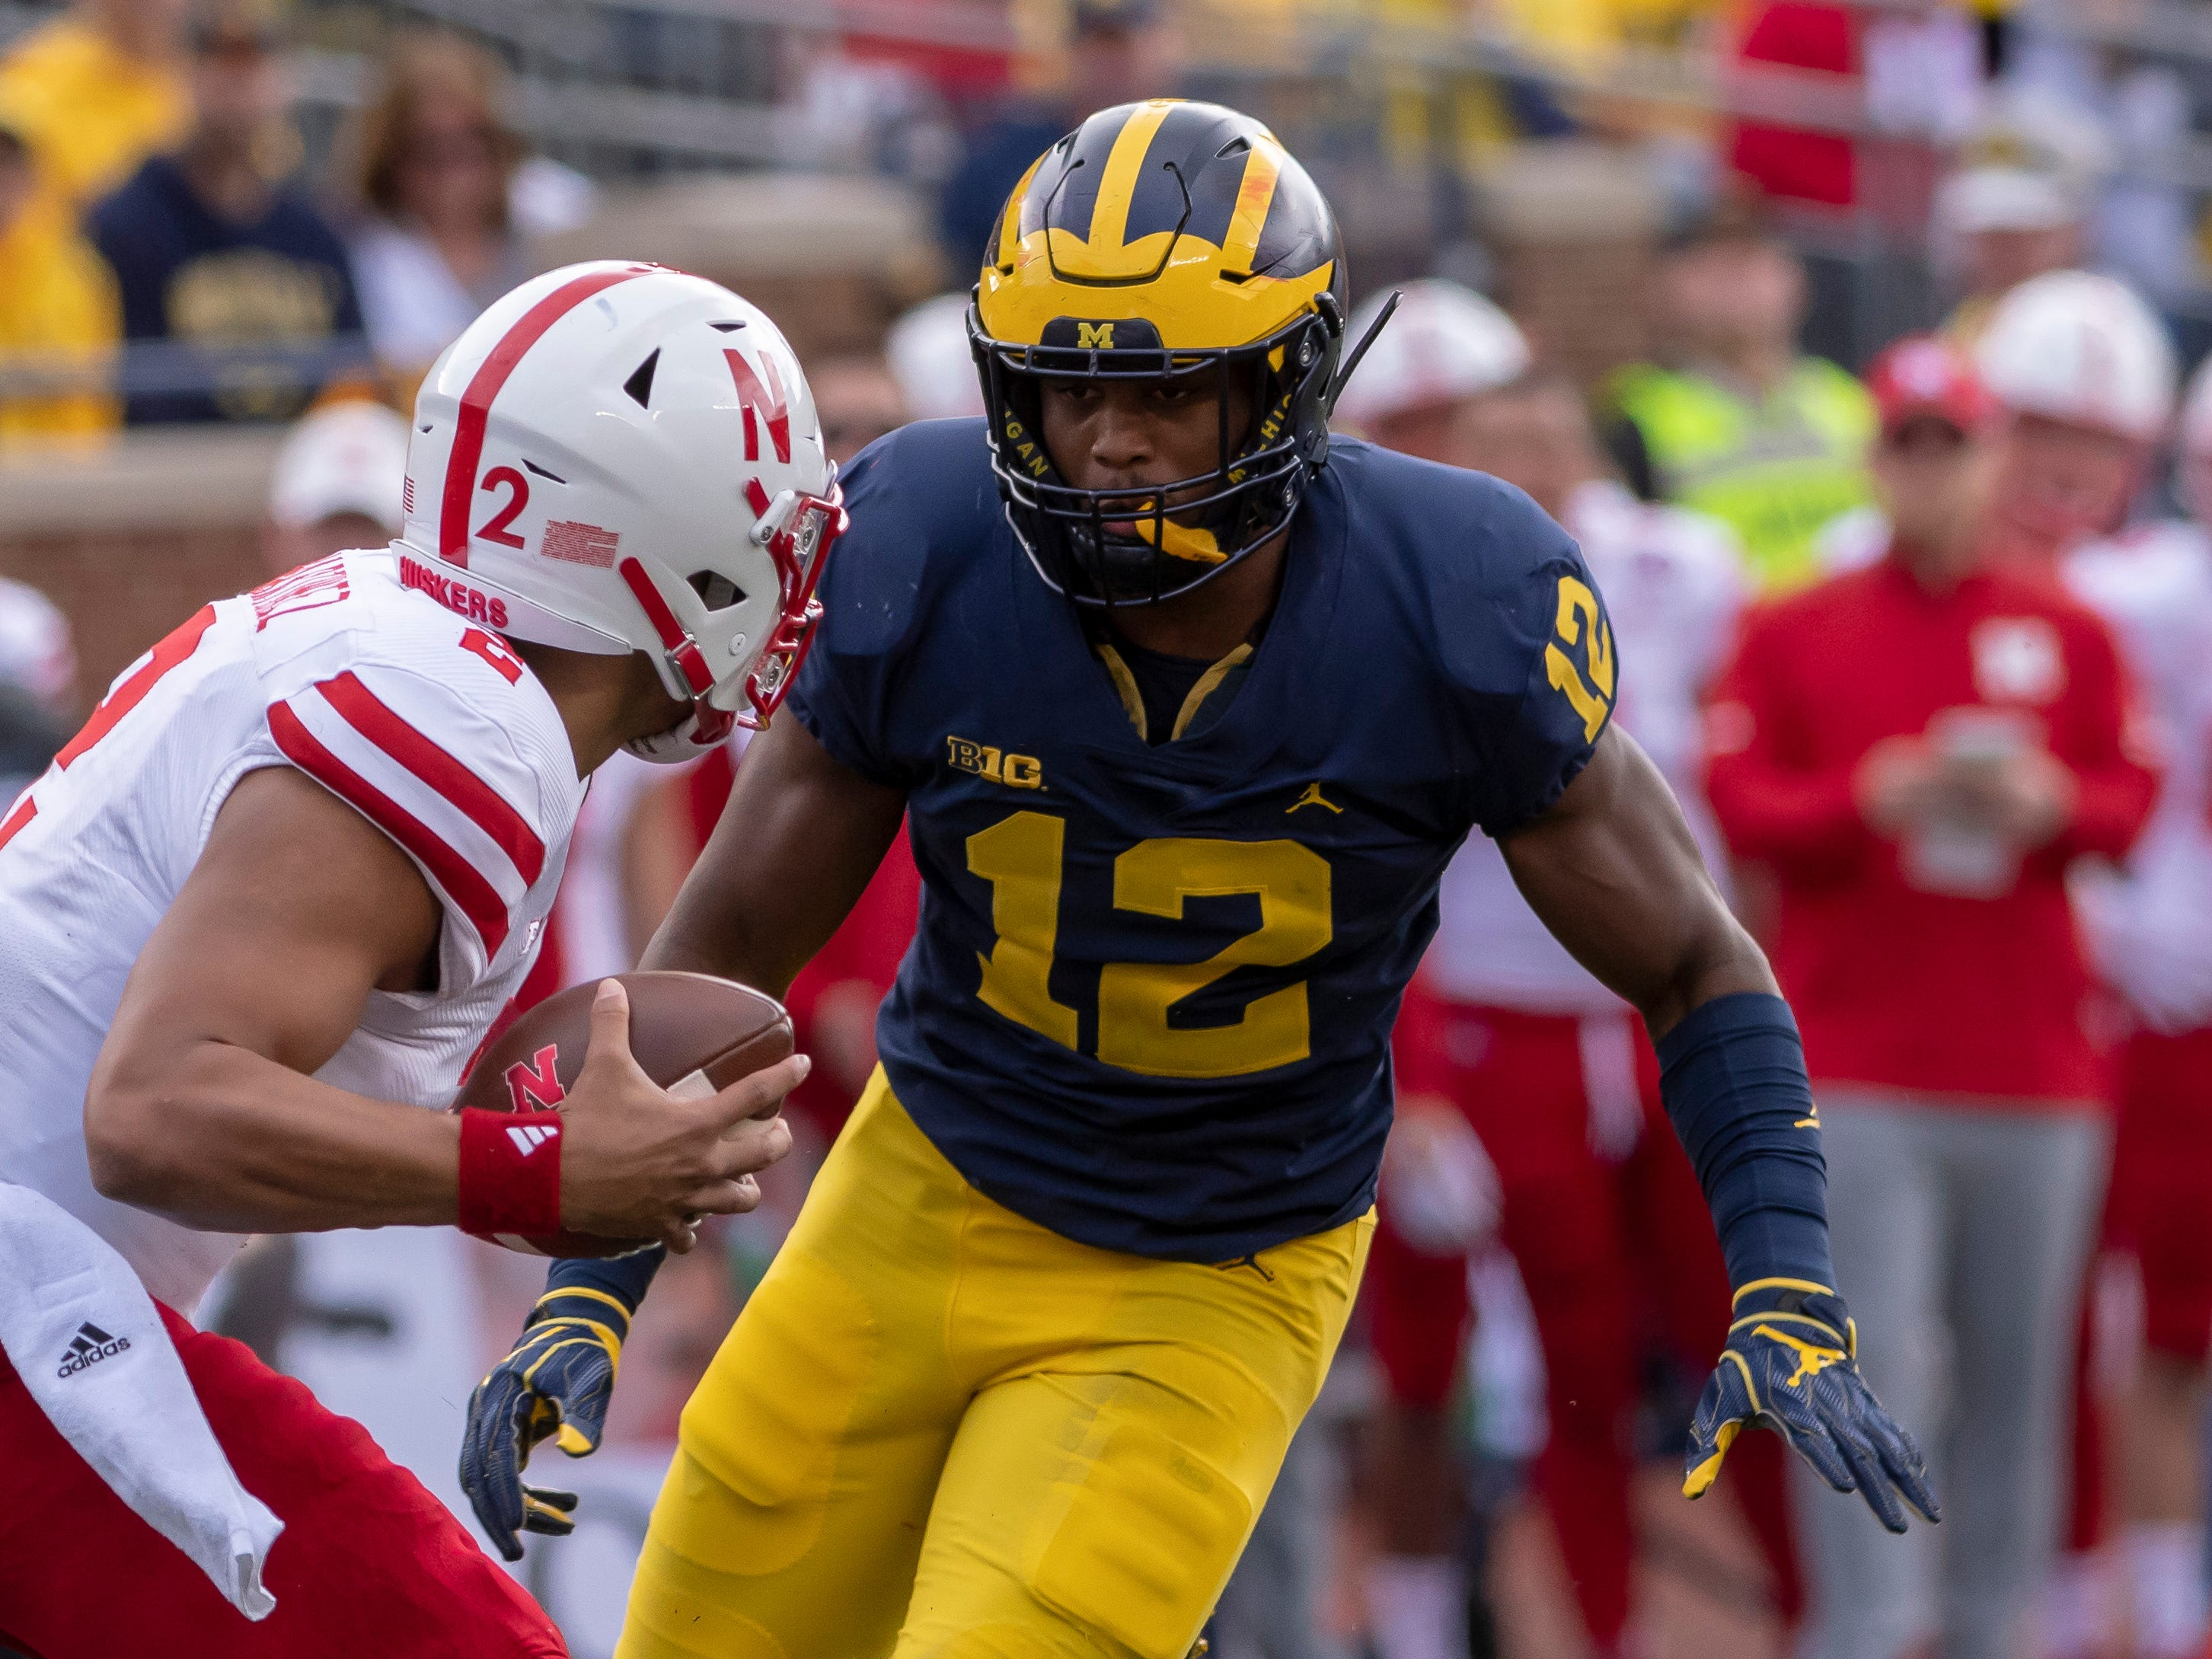 MIDDLE LINEBACKER: Josh Ross – He was honorable mention All-Big Ten last fall and earned the team's Blue Collar Award. Ross, who will be a junior this season, filled in for Devin Bush at the Peach Bowl. He finished the season with 61 tackles, including five tackles for loss.